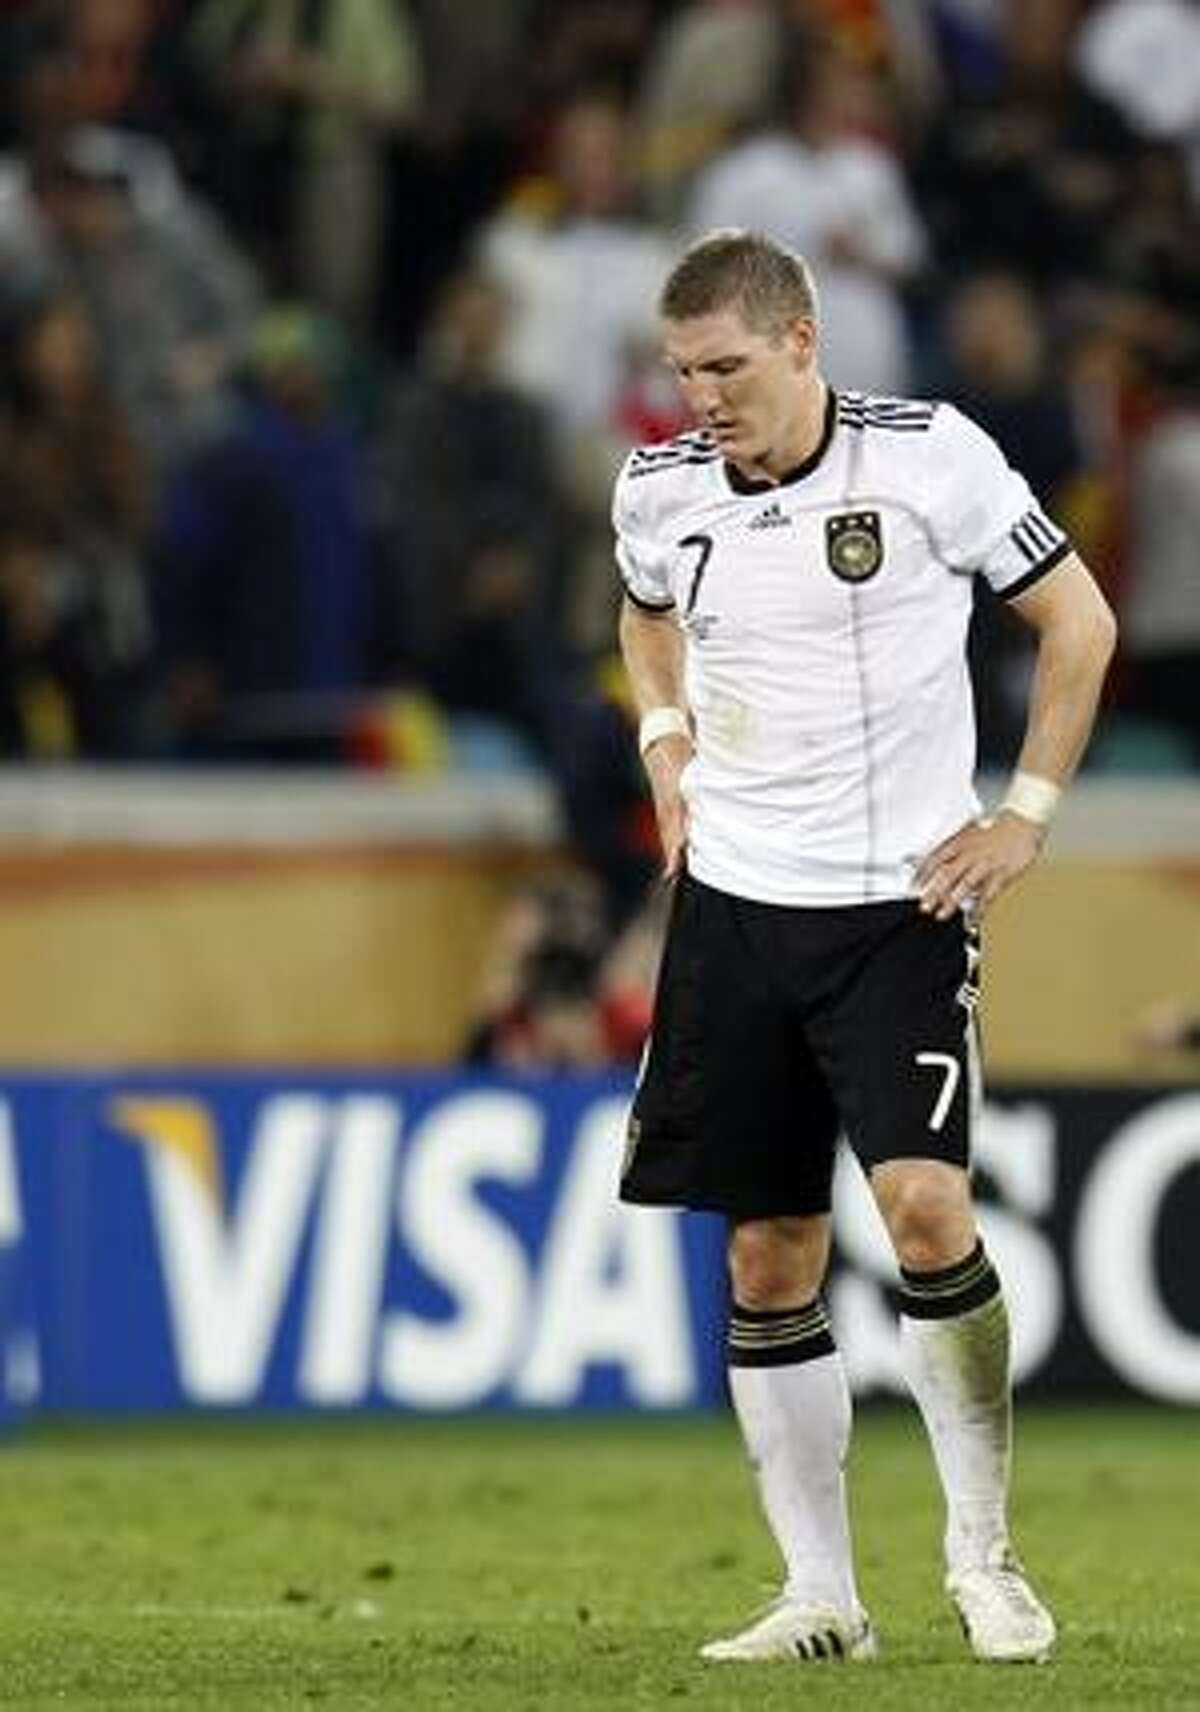 Germany's Bastian Schweinsteiger reacts after the World Cup semifinal soccer match between Germany and Spain at the stadium in Durban, South Africa, Wednesday. Germany lost 1-0. (AP Photo/DLuca Bruno)